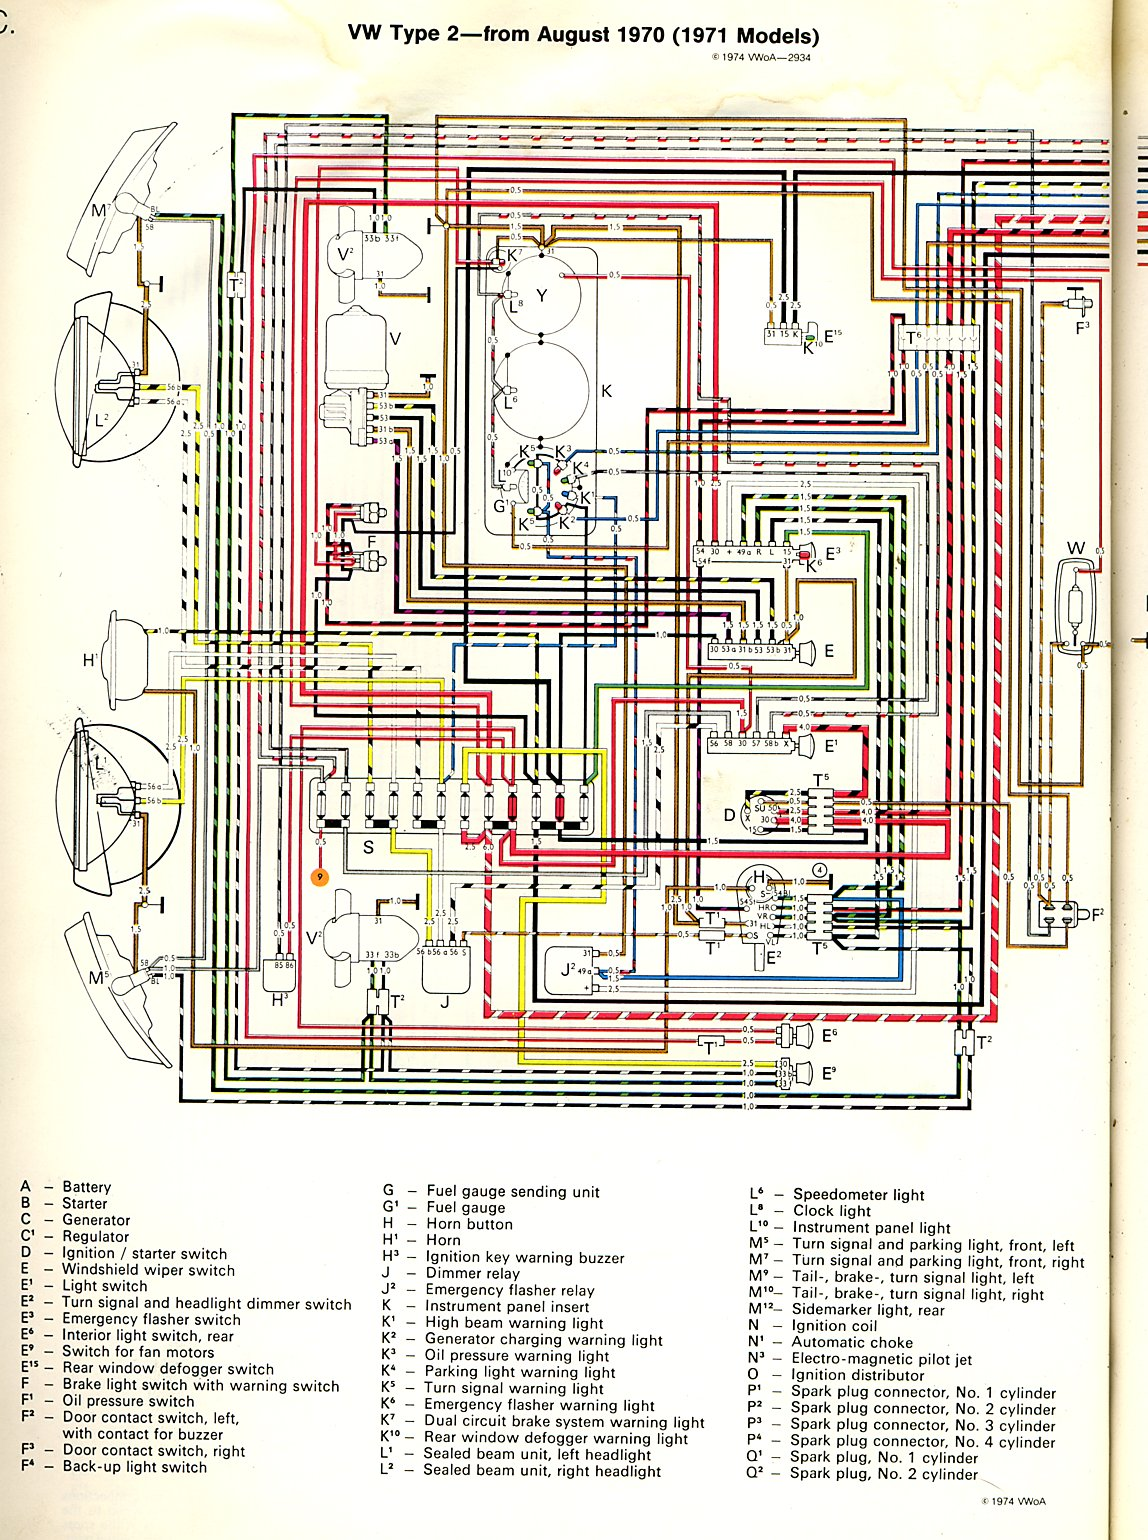 baybus_71a thesamba com type 2 wiring diagrams 1971 vw bus wiring diagram at bayanpartner.co